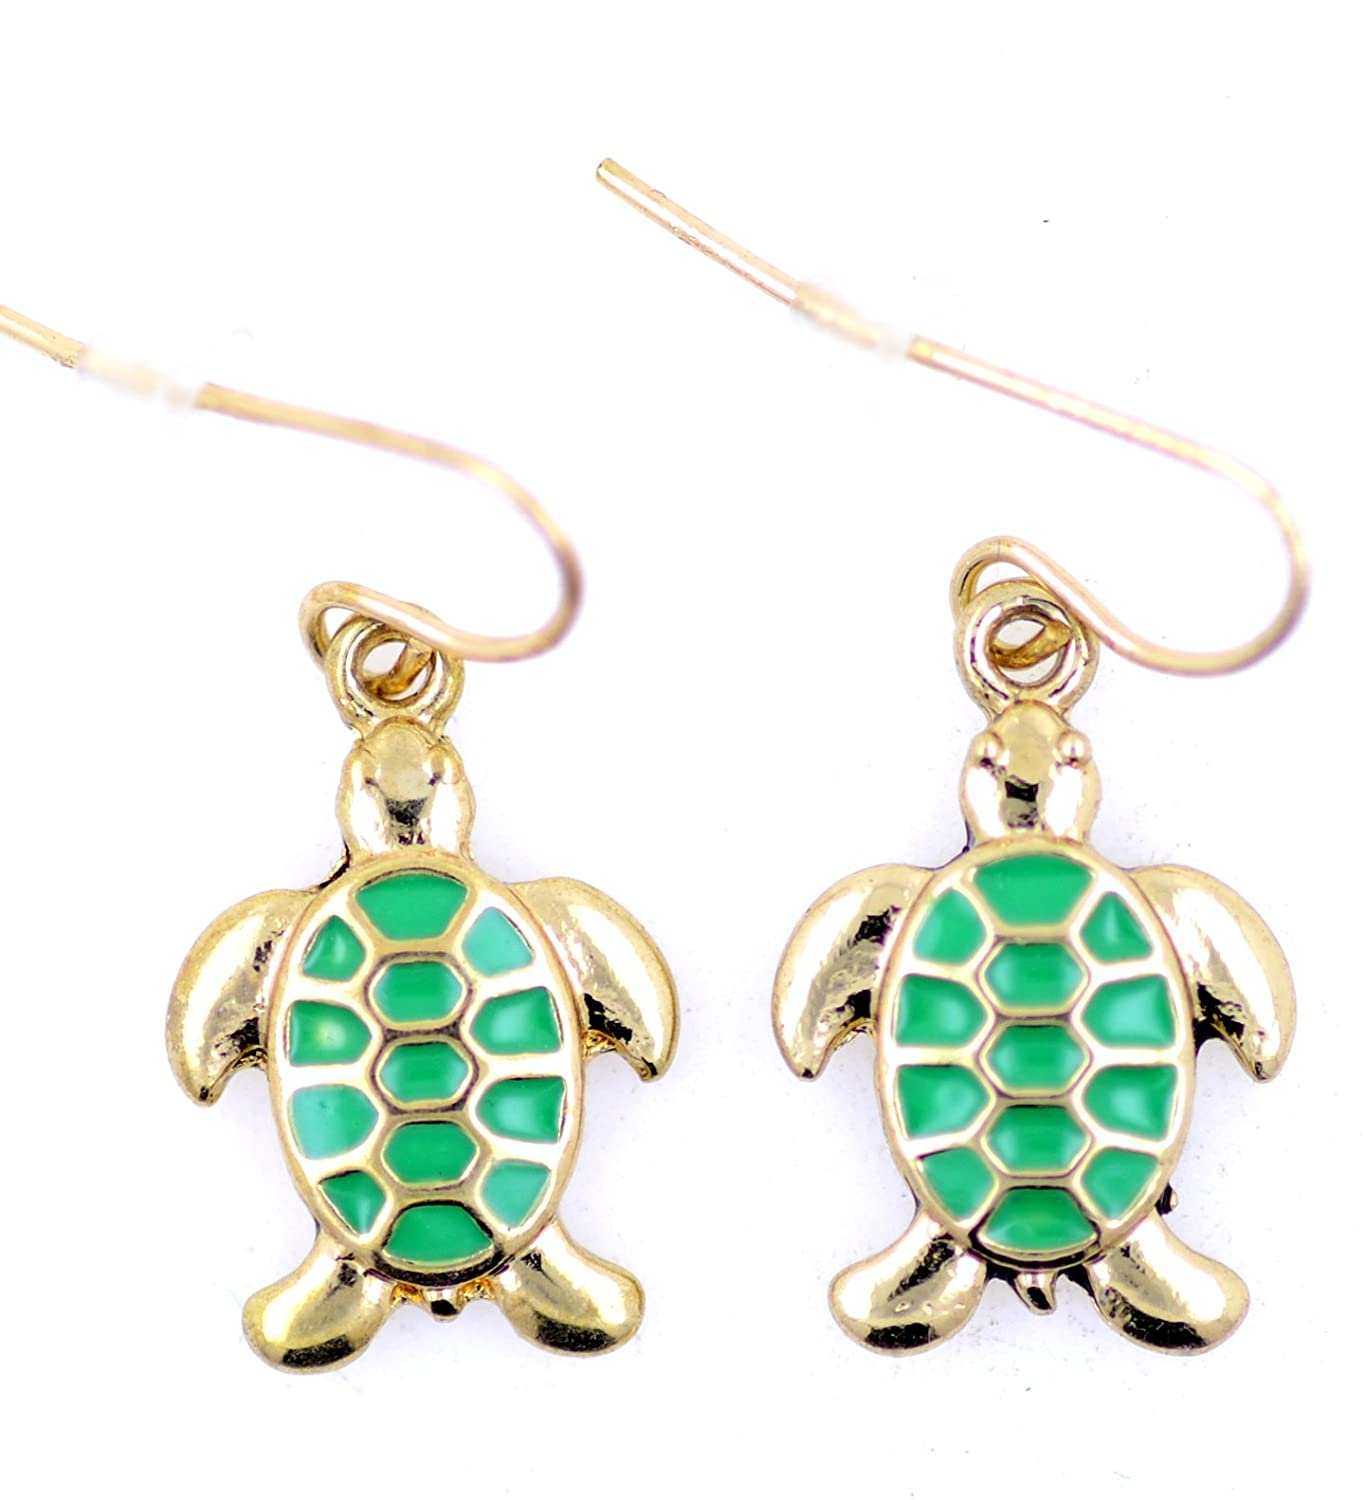 earrings topaz new tortoise festival crystal men from agate brand gift charms semi stones precious on jewelry in high women design and material for end accessories item